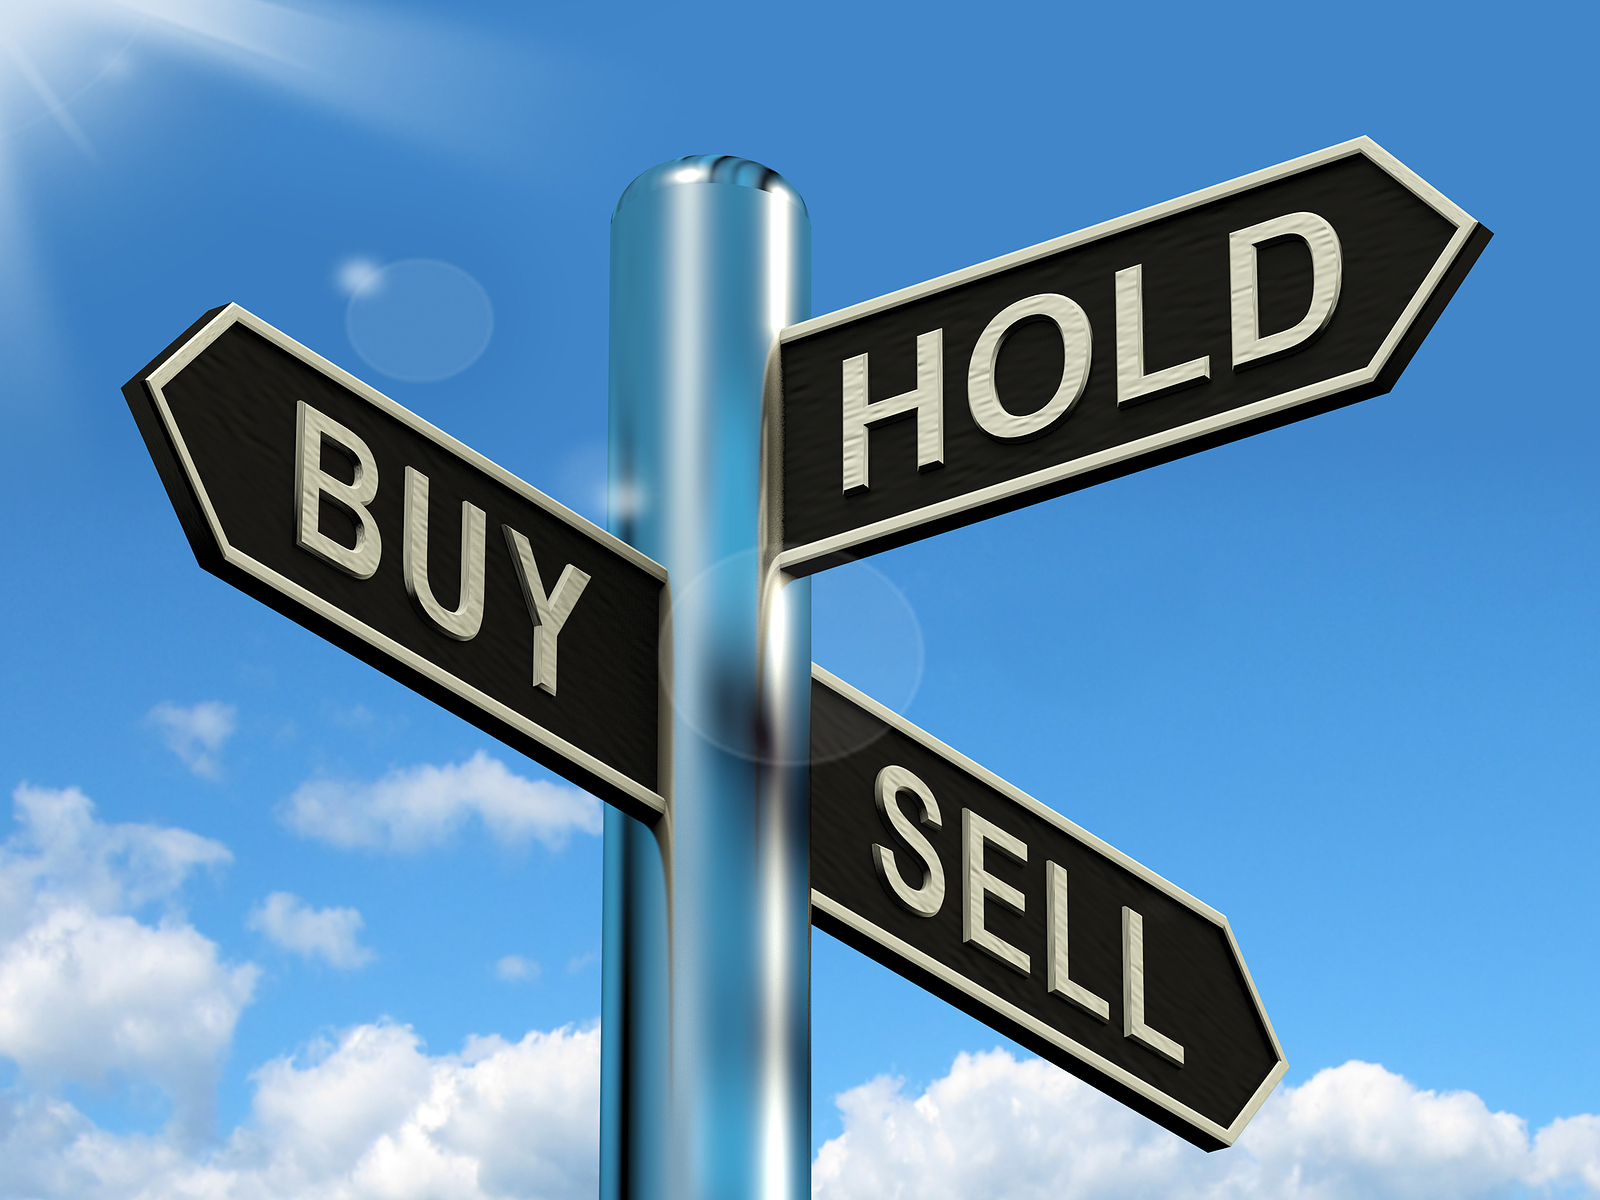 Buy Sell Hold sign